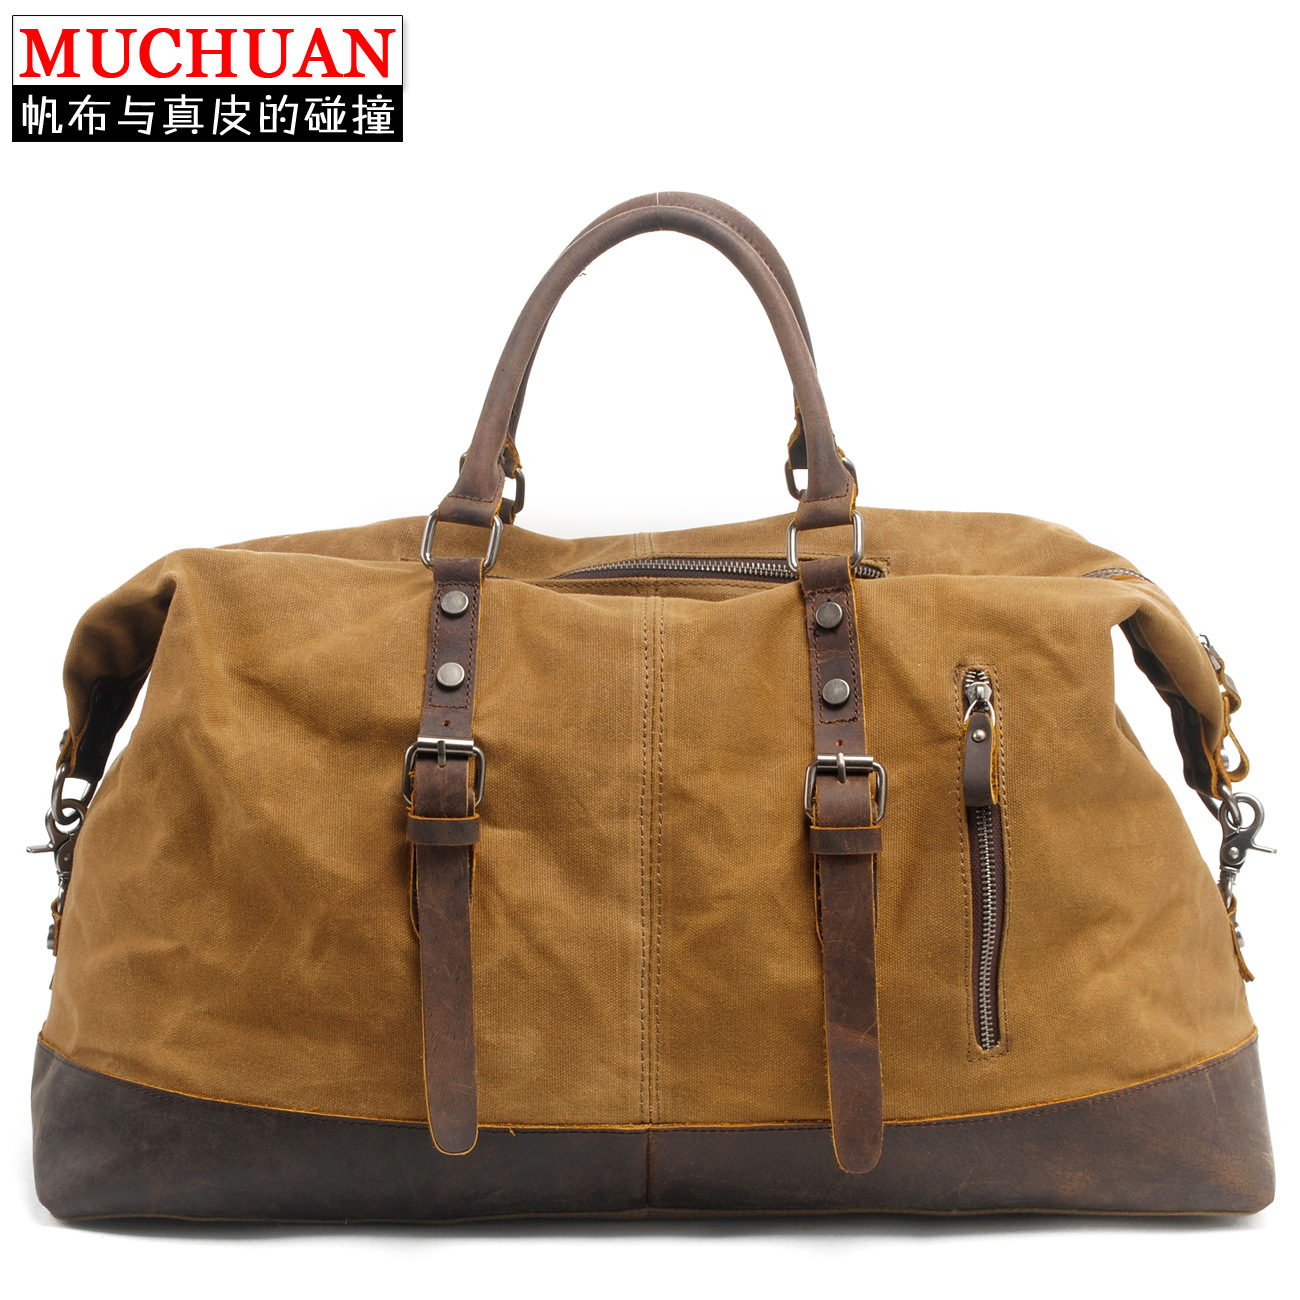 Large-capacity men's travel bag Europe and the United States waterproof canvas Messenger bag Africa bag study abroad package